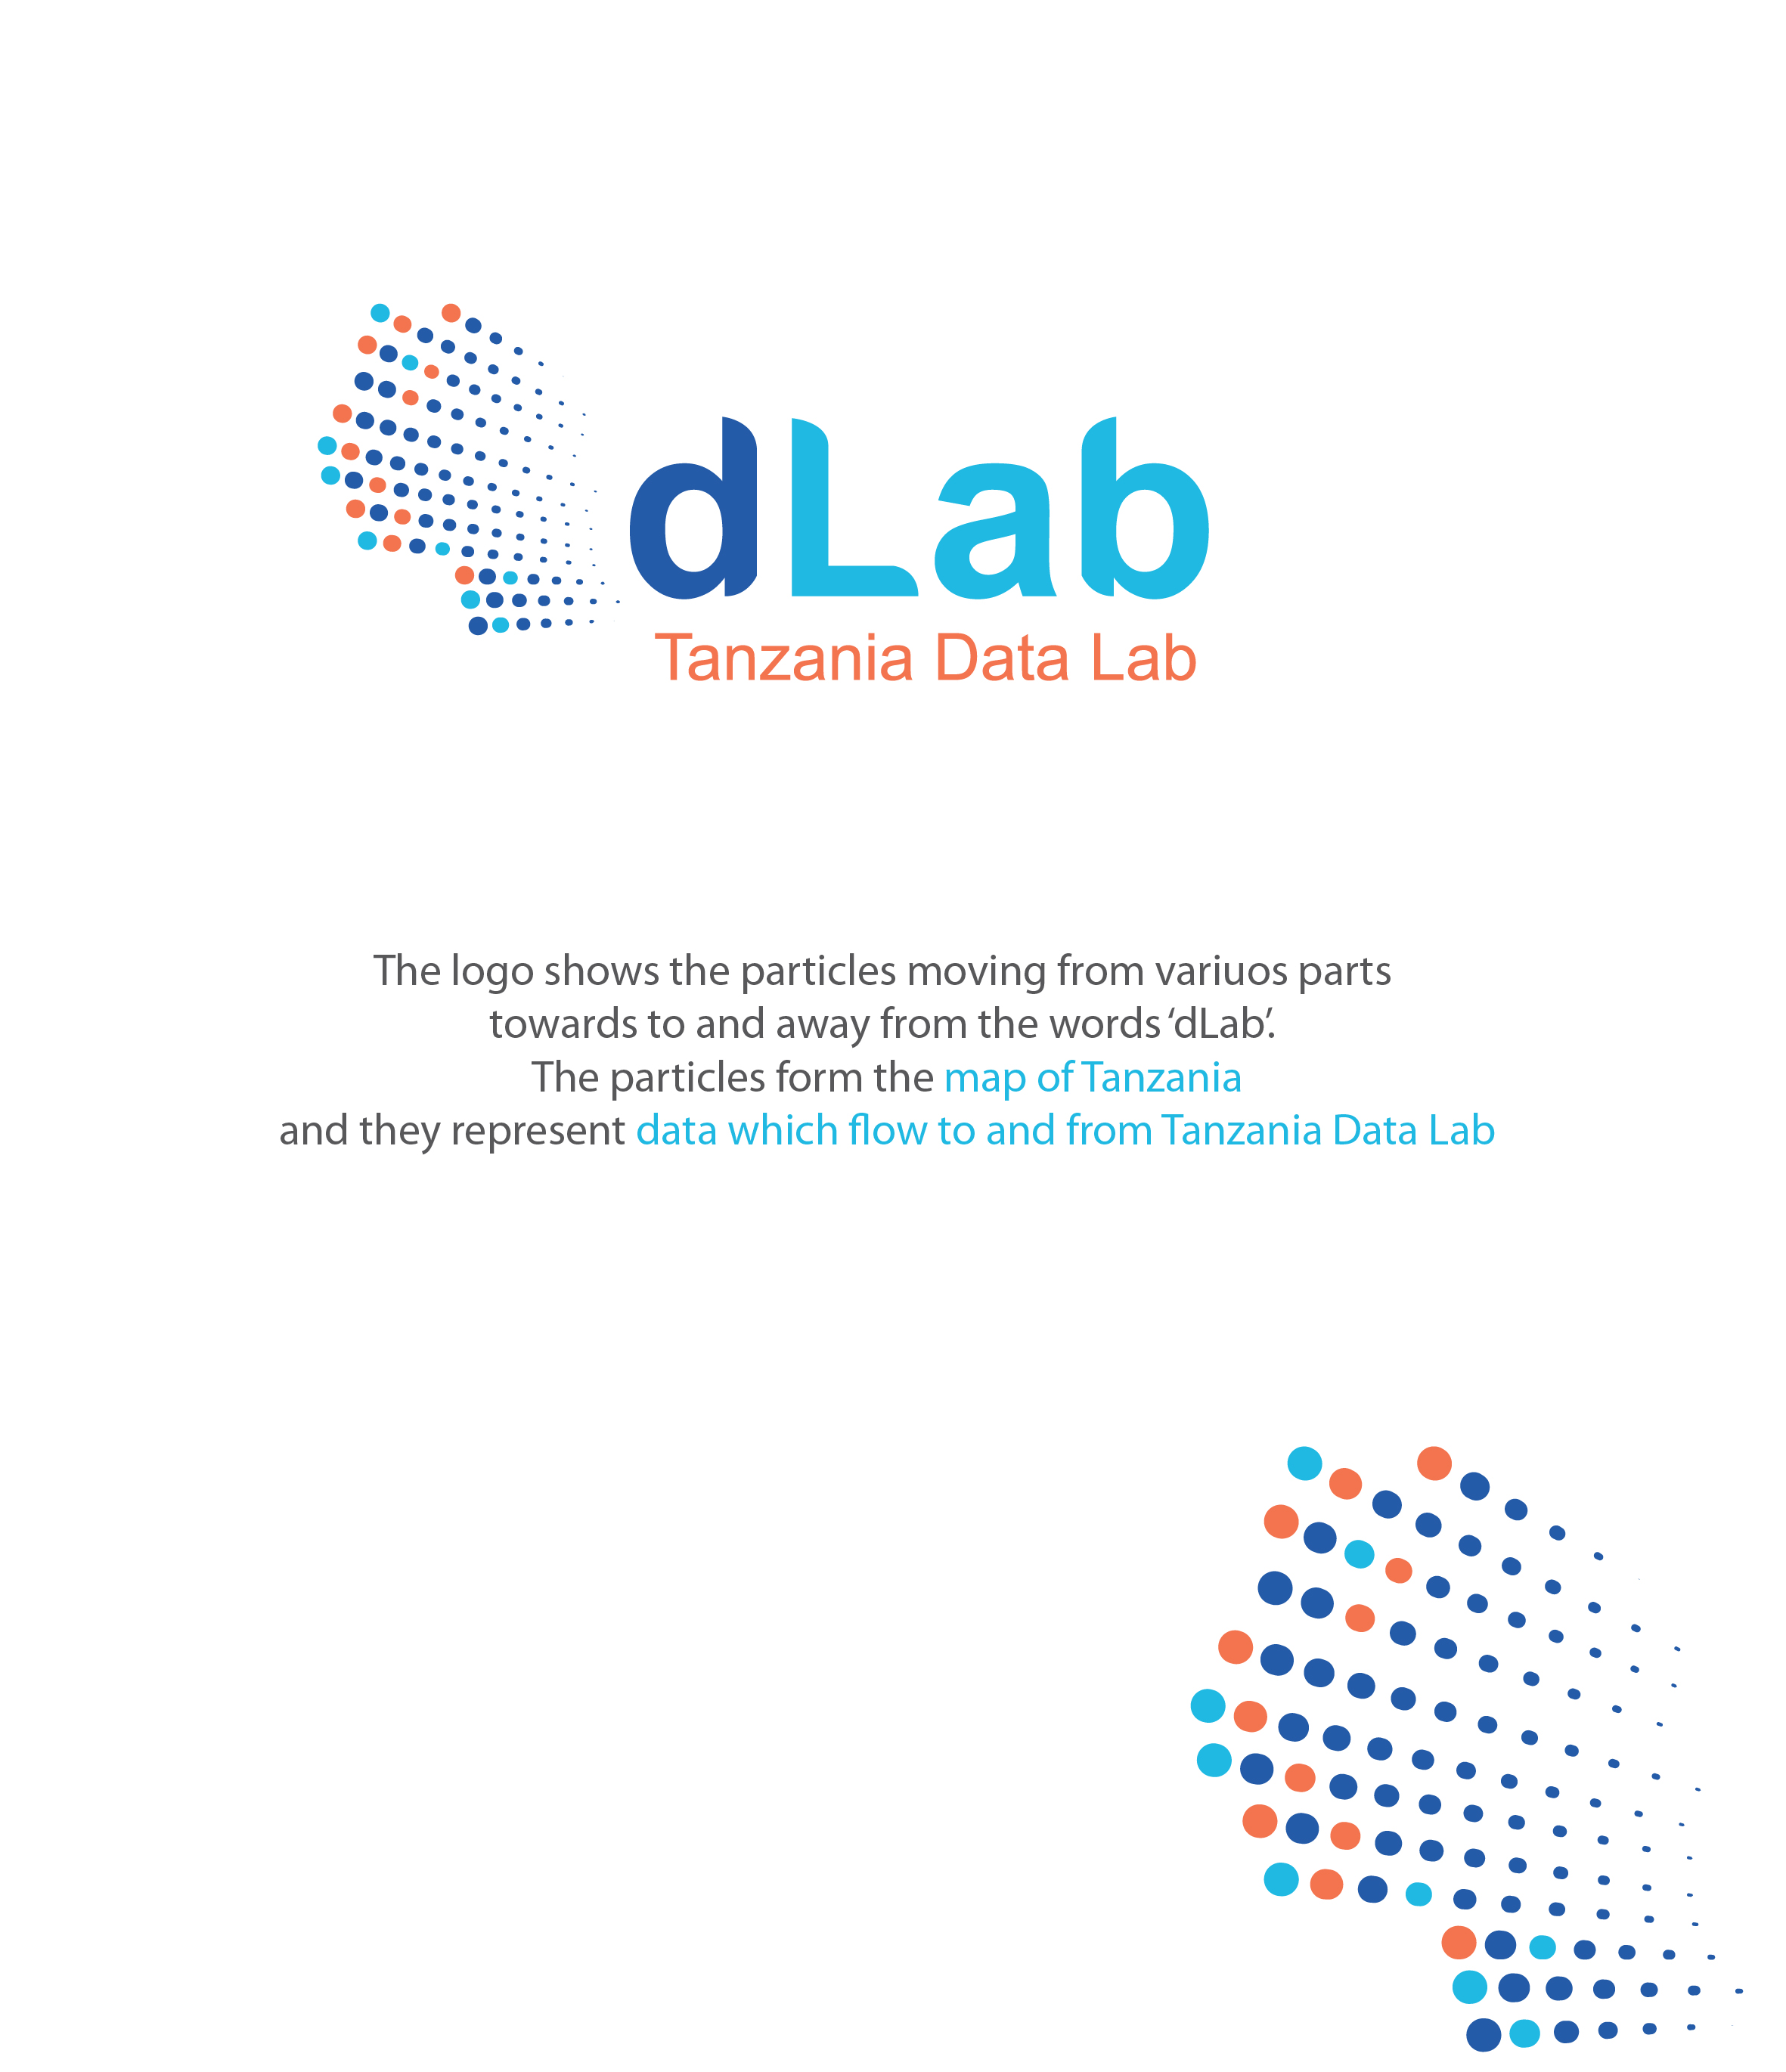 dLab logo descriptions